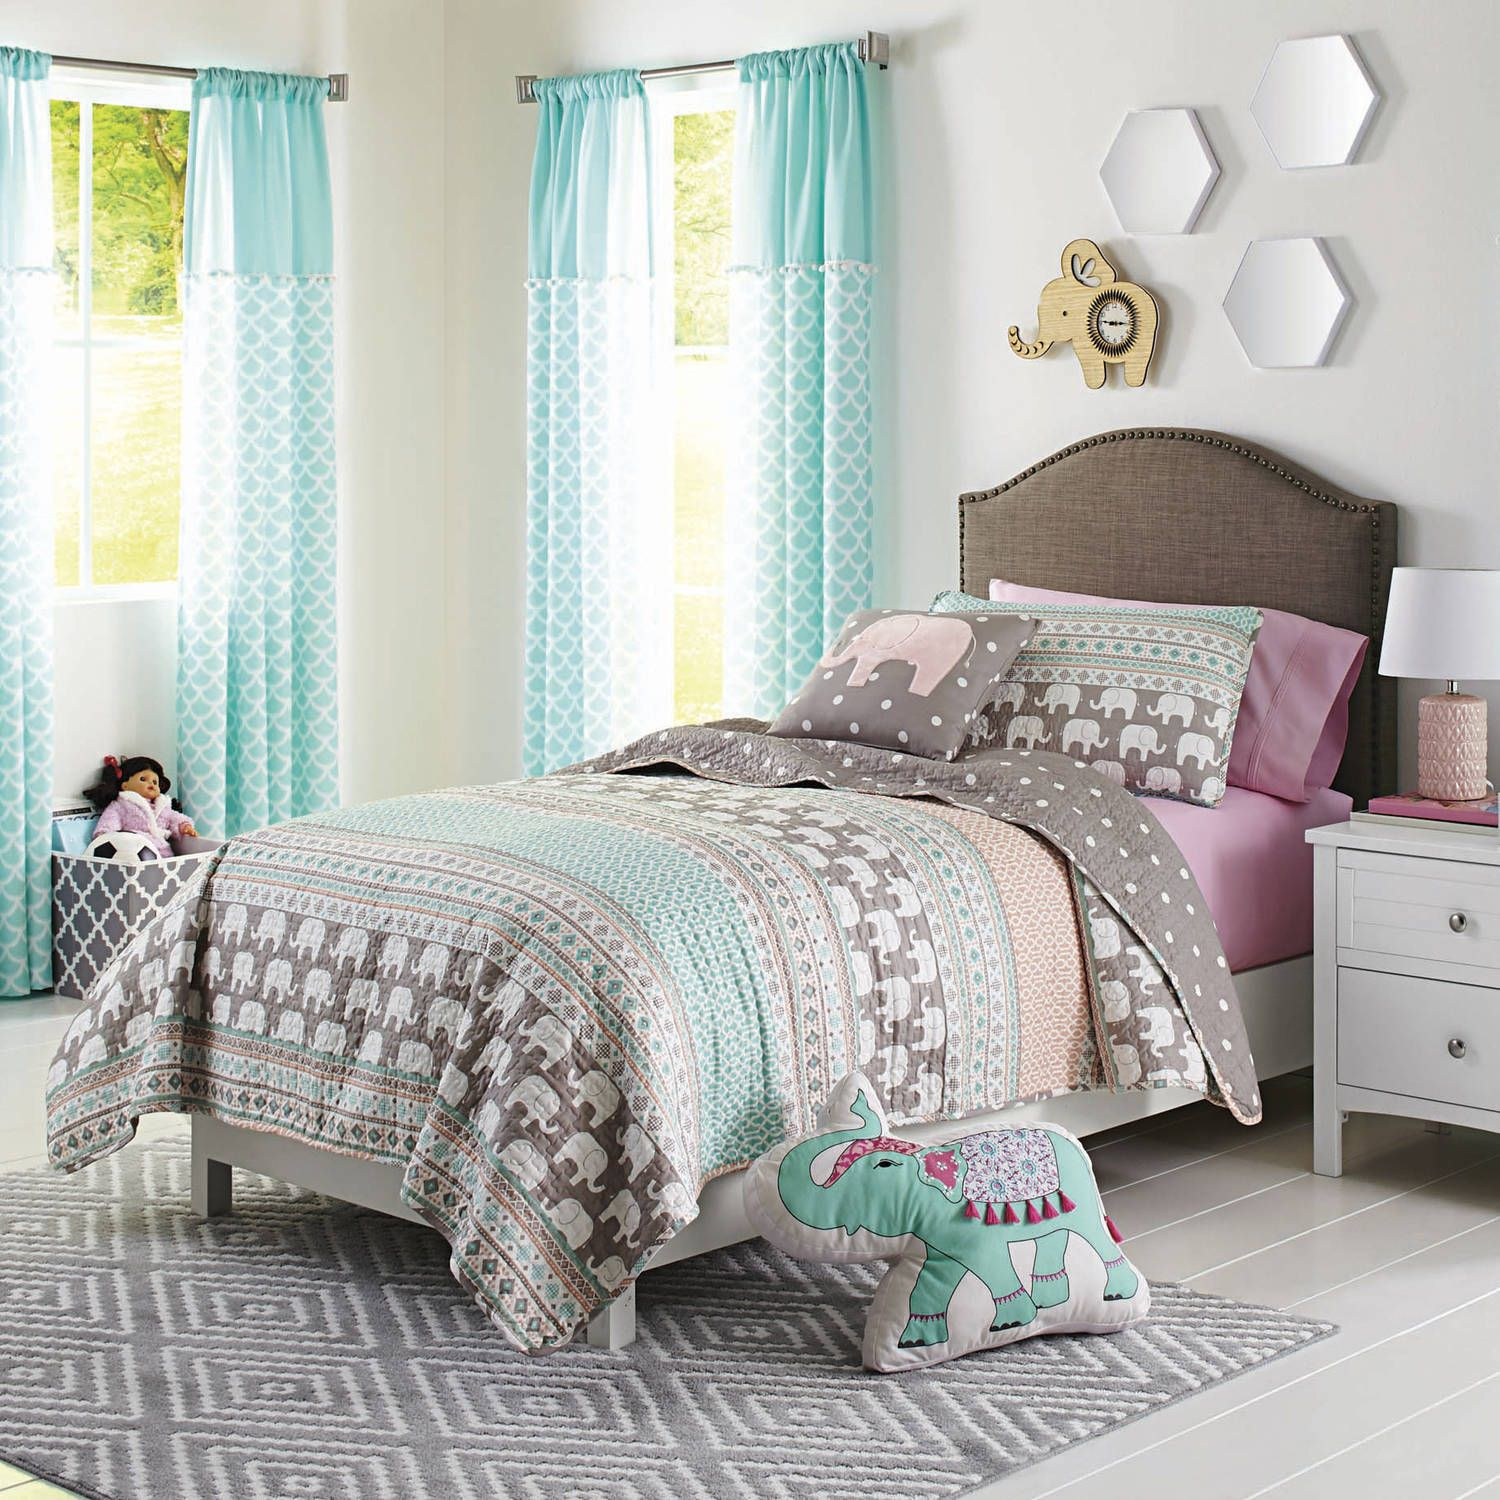 51dc597dc9e67b4aede9508fa0fca6f8 - Better Homes And Gardens Bedding And Curtains